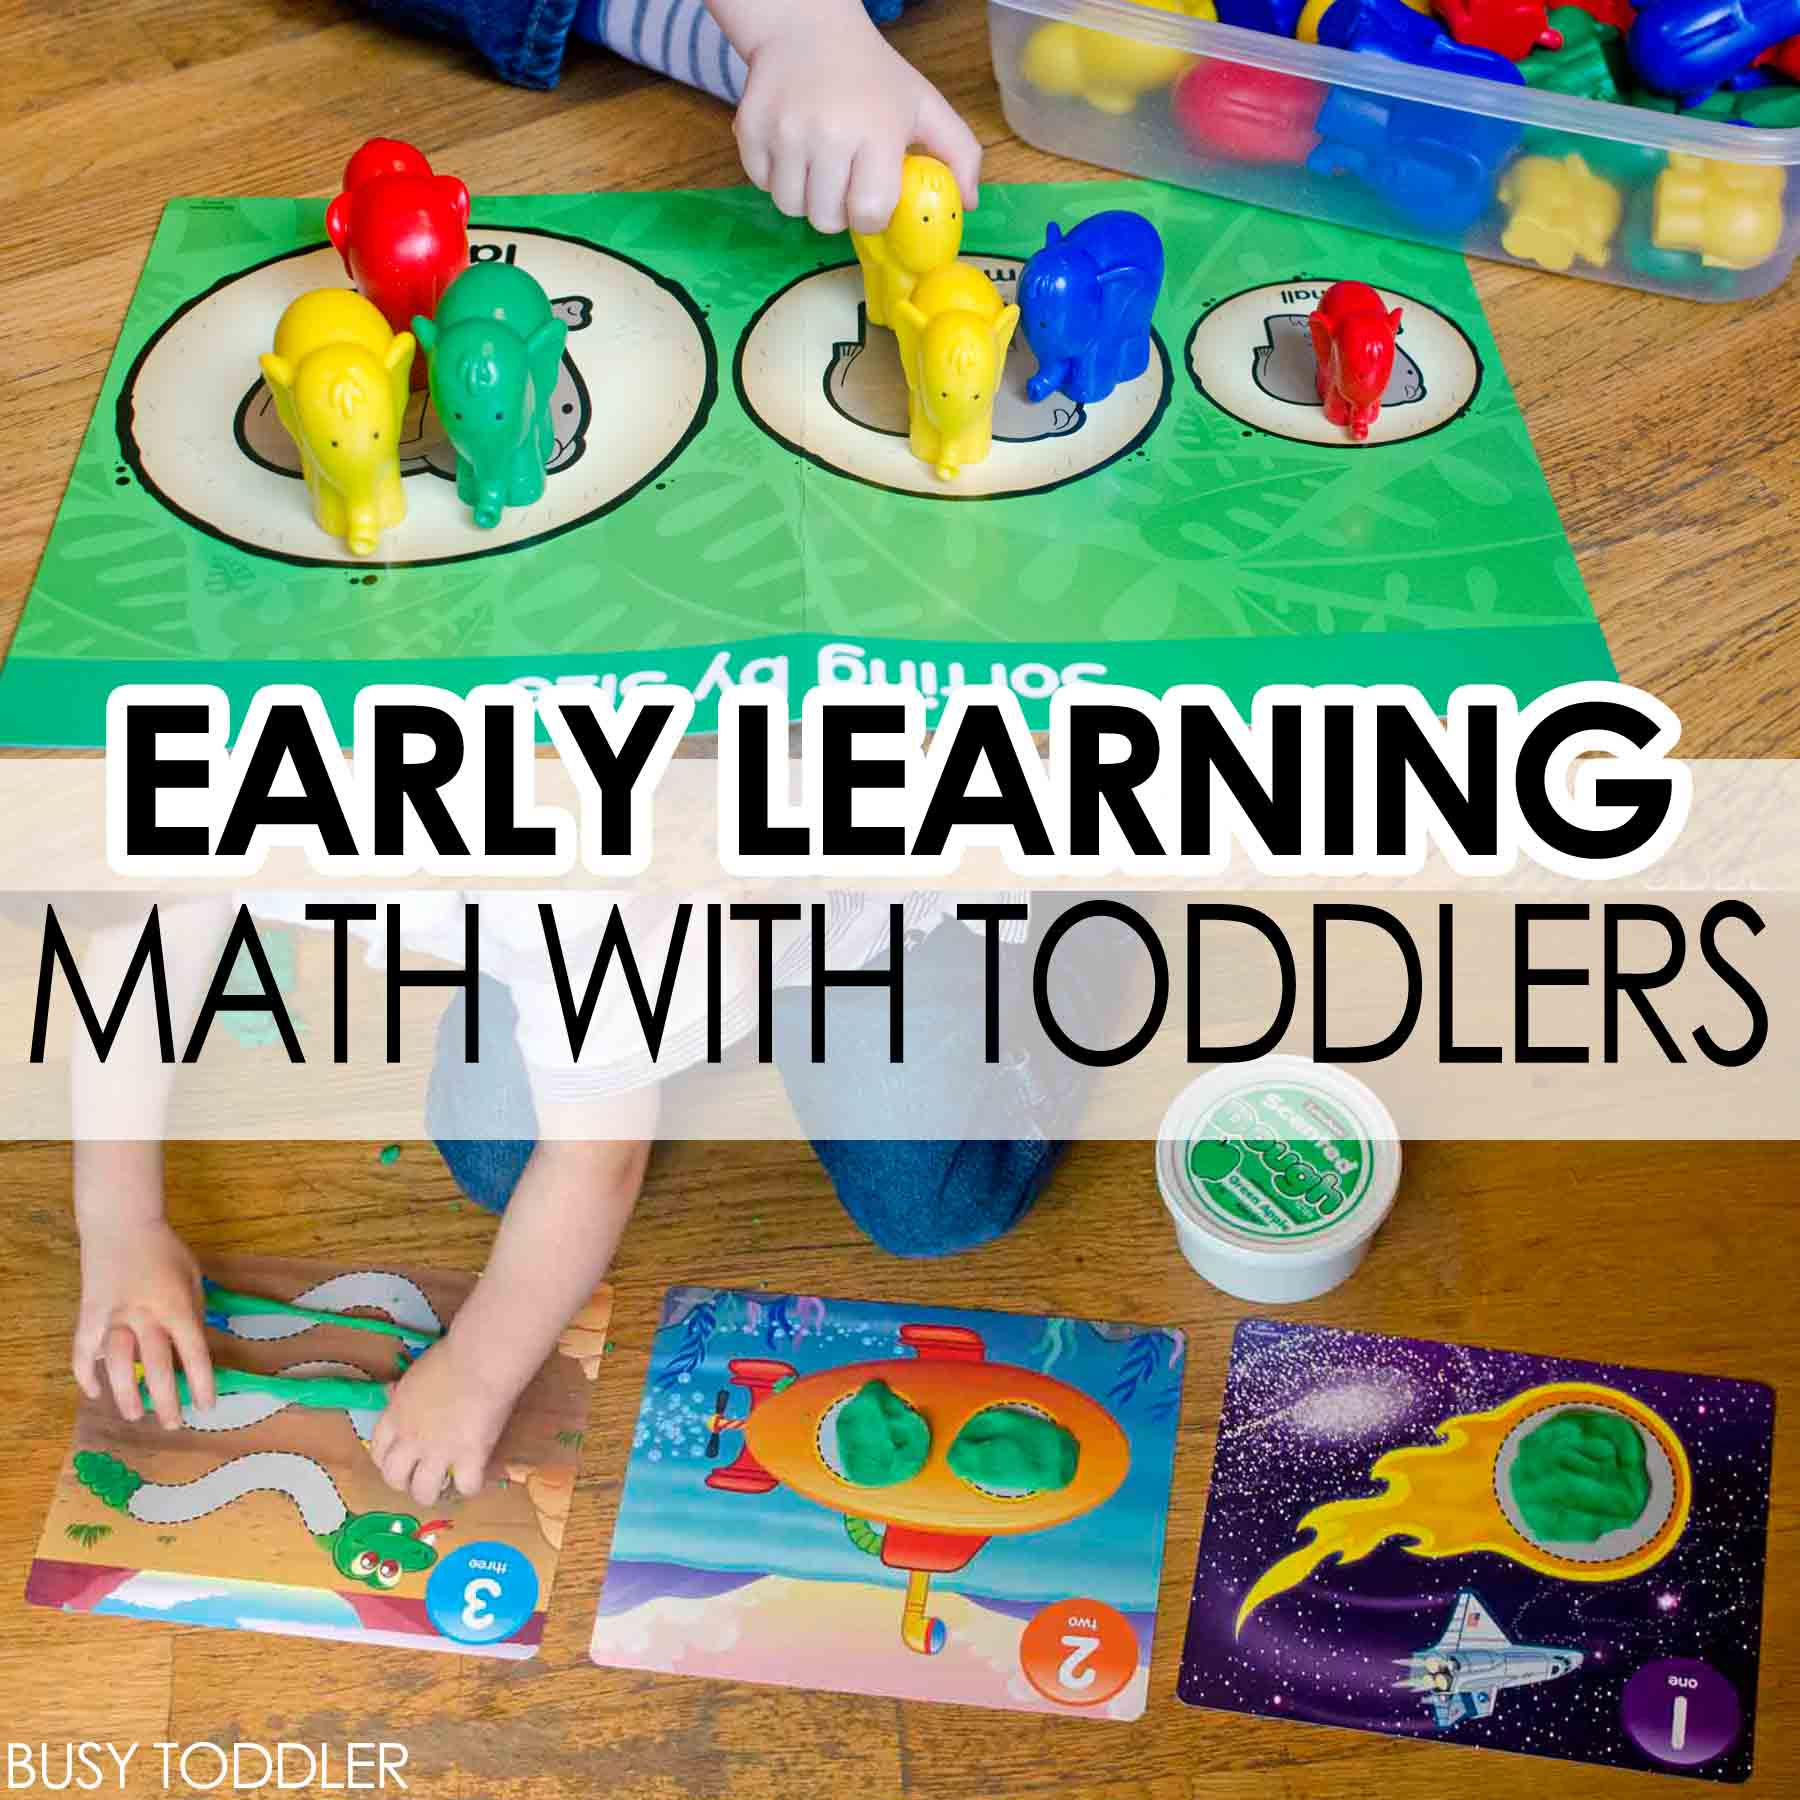 Early Learning Math with Toddlers Busy Toddler